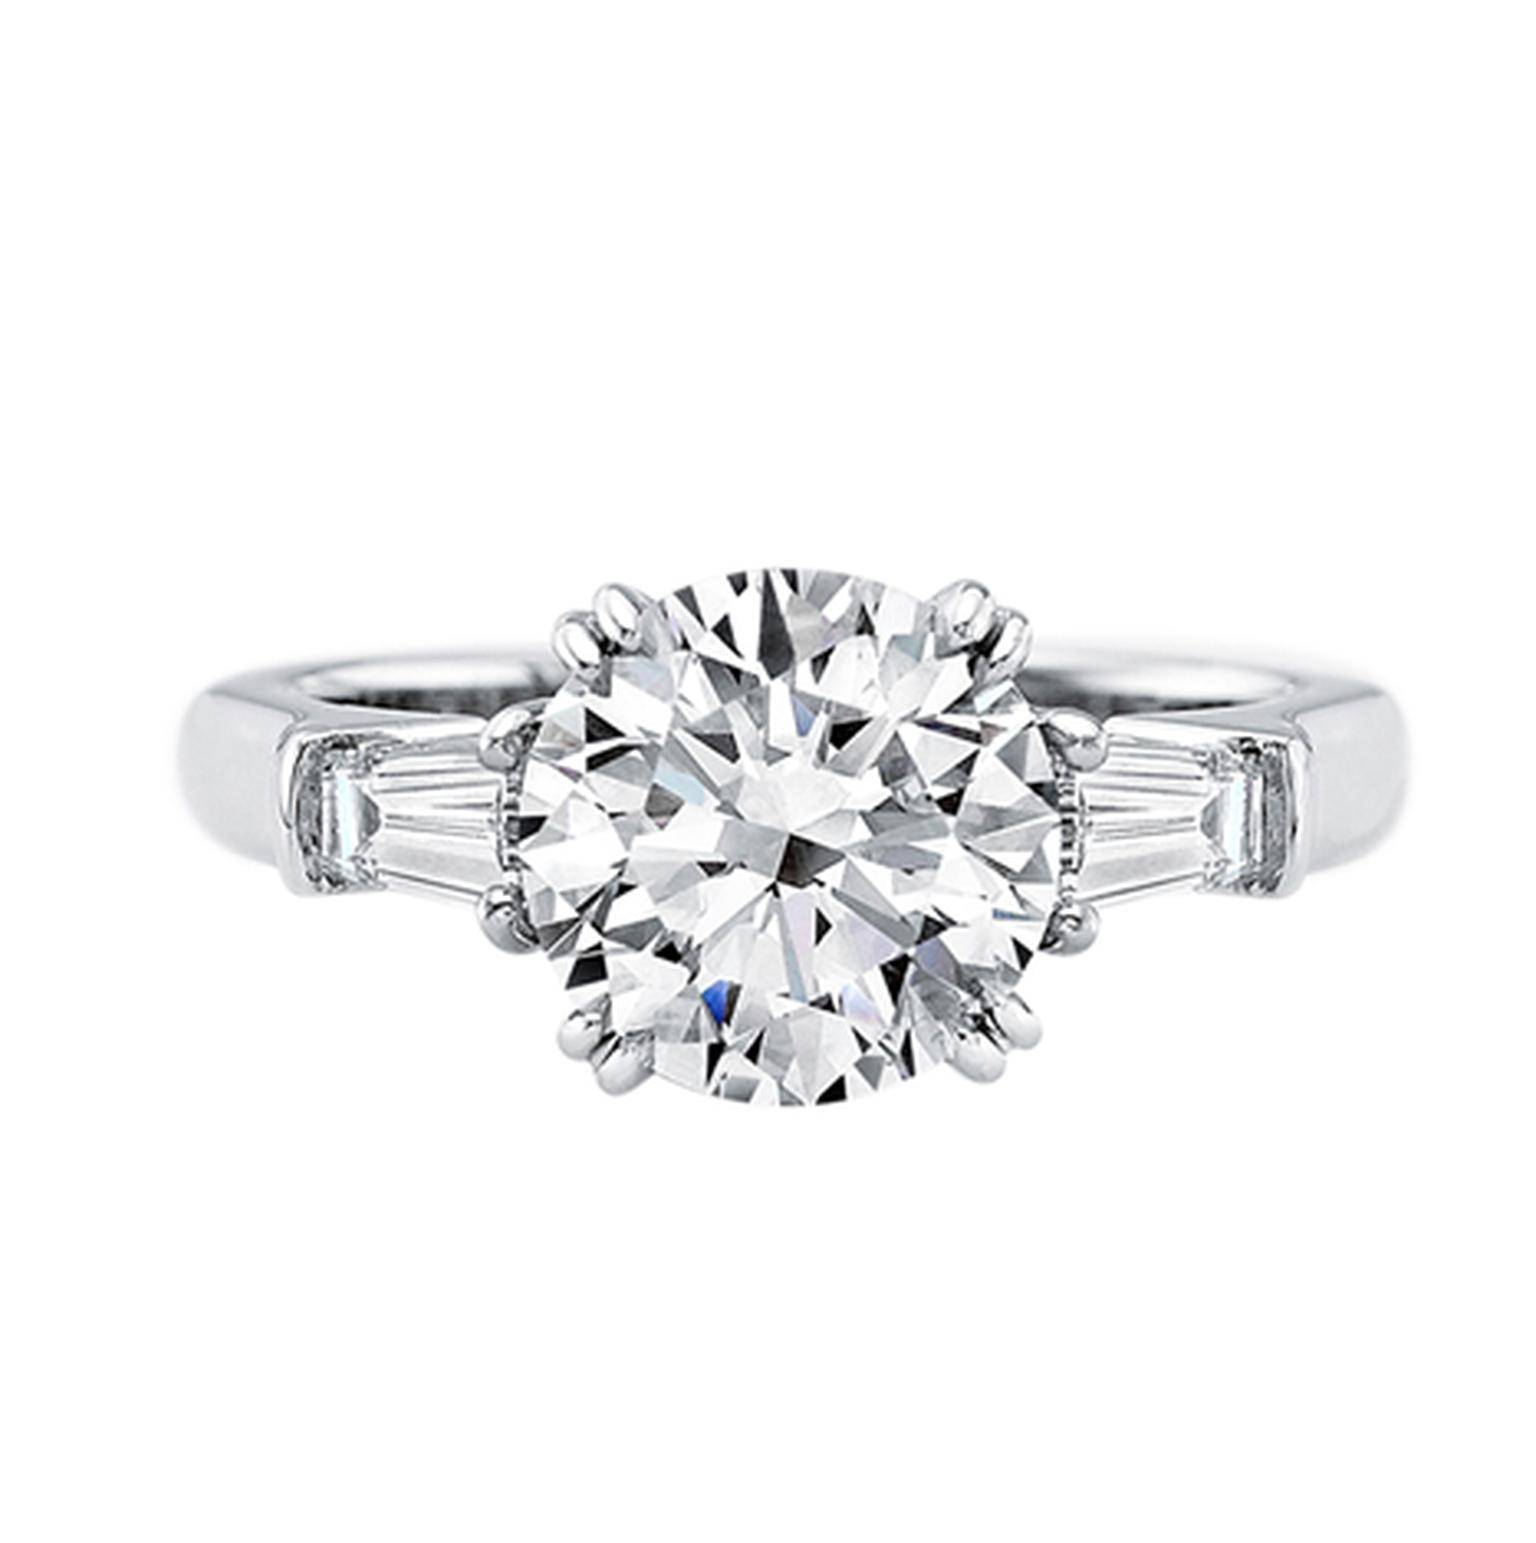 Harry Winston Classic Winston Platinum Diamond Engagement Intended For Harry Winston Engagement Rings (View 6 of 15)